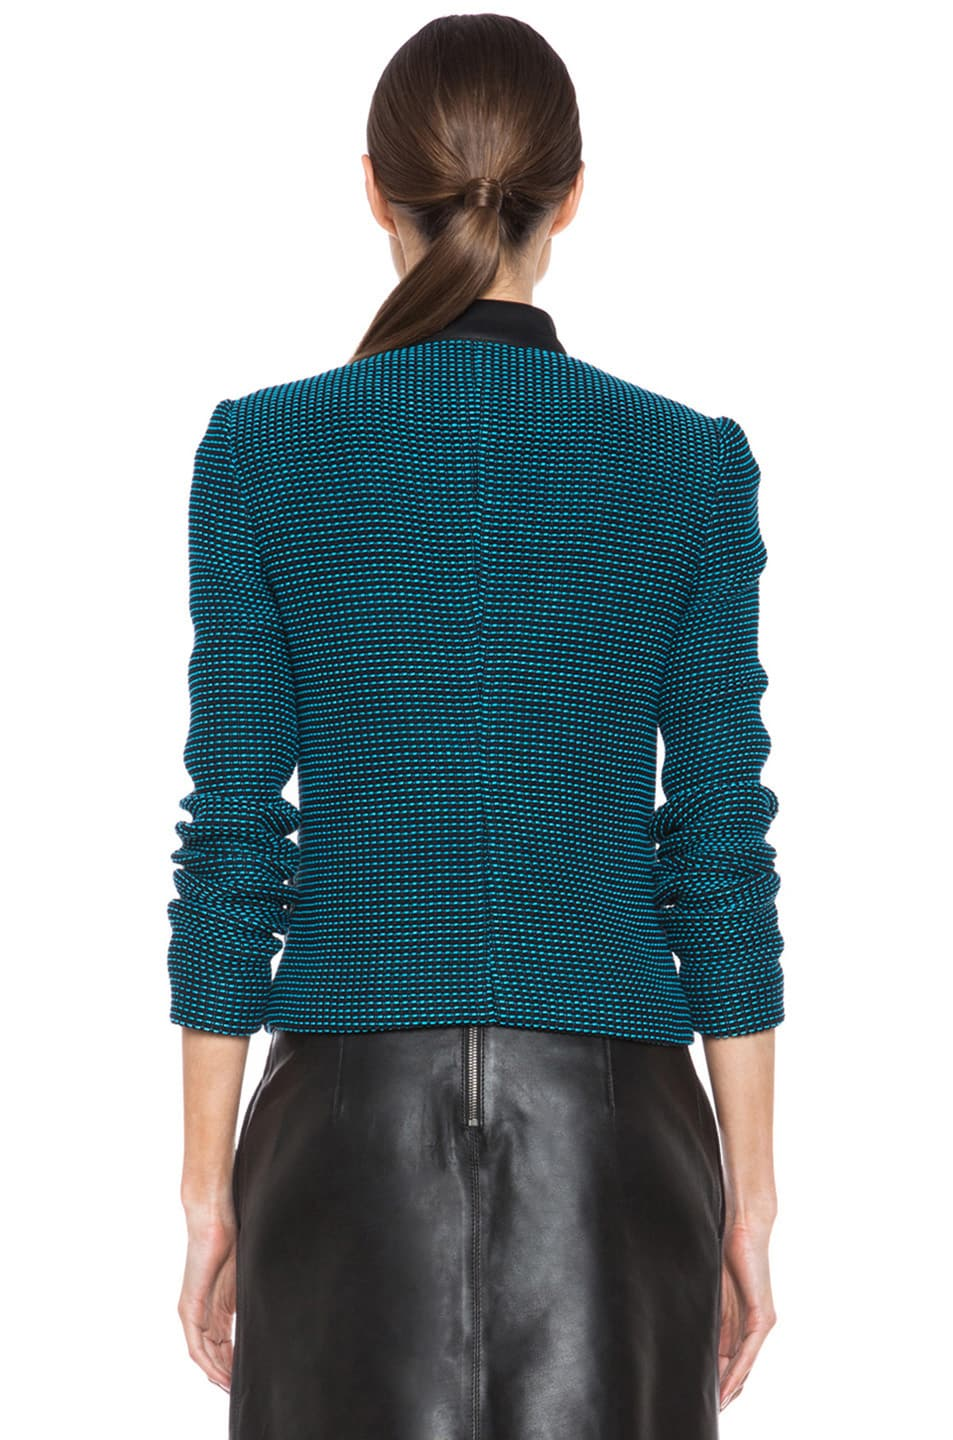 Image 5 of Yigal Azrouel Ribbon Knit Jacket in Jet Black